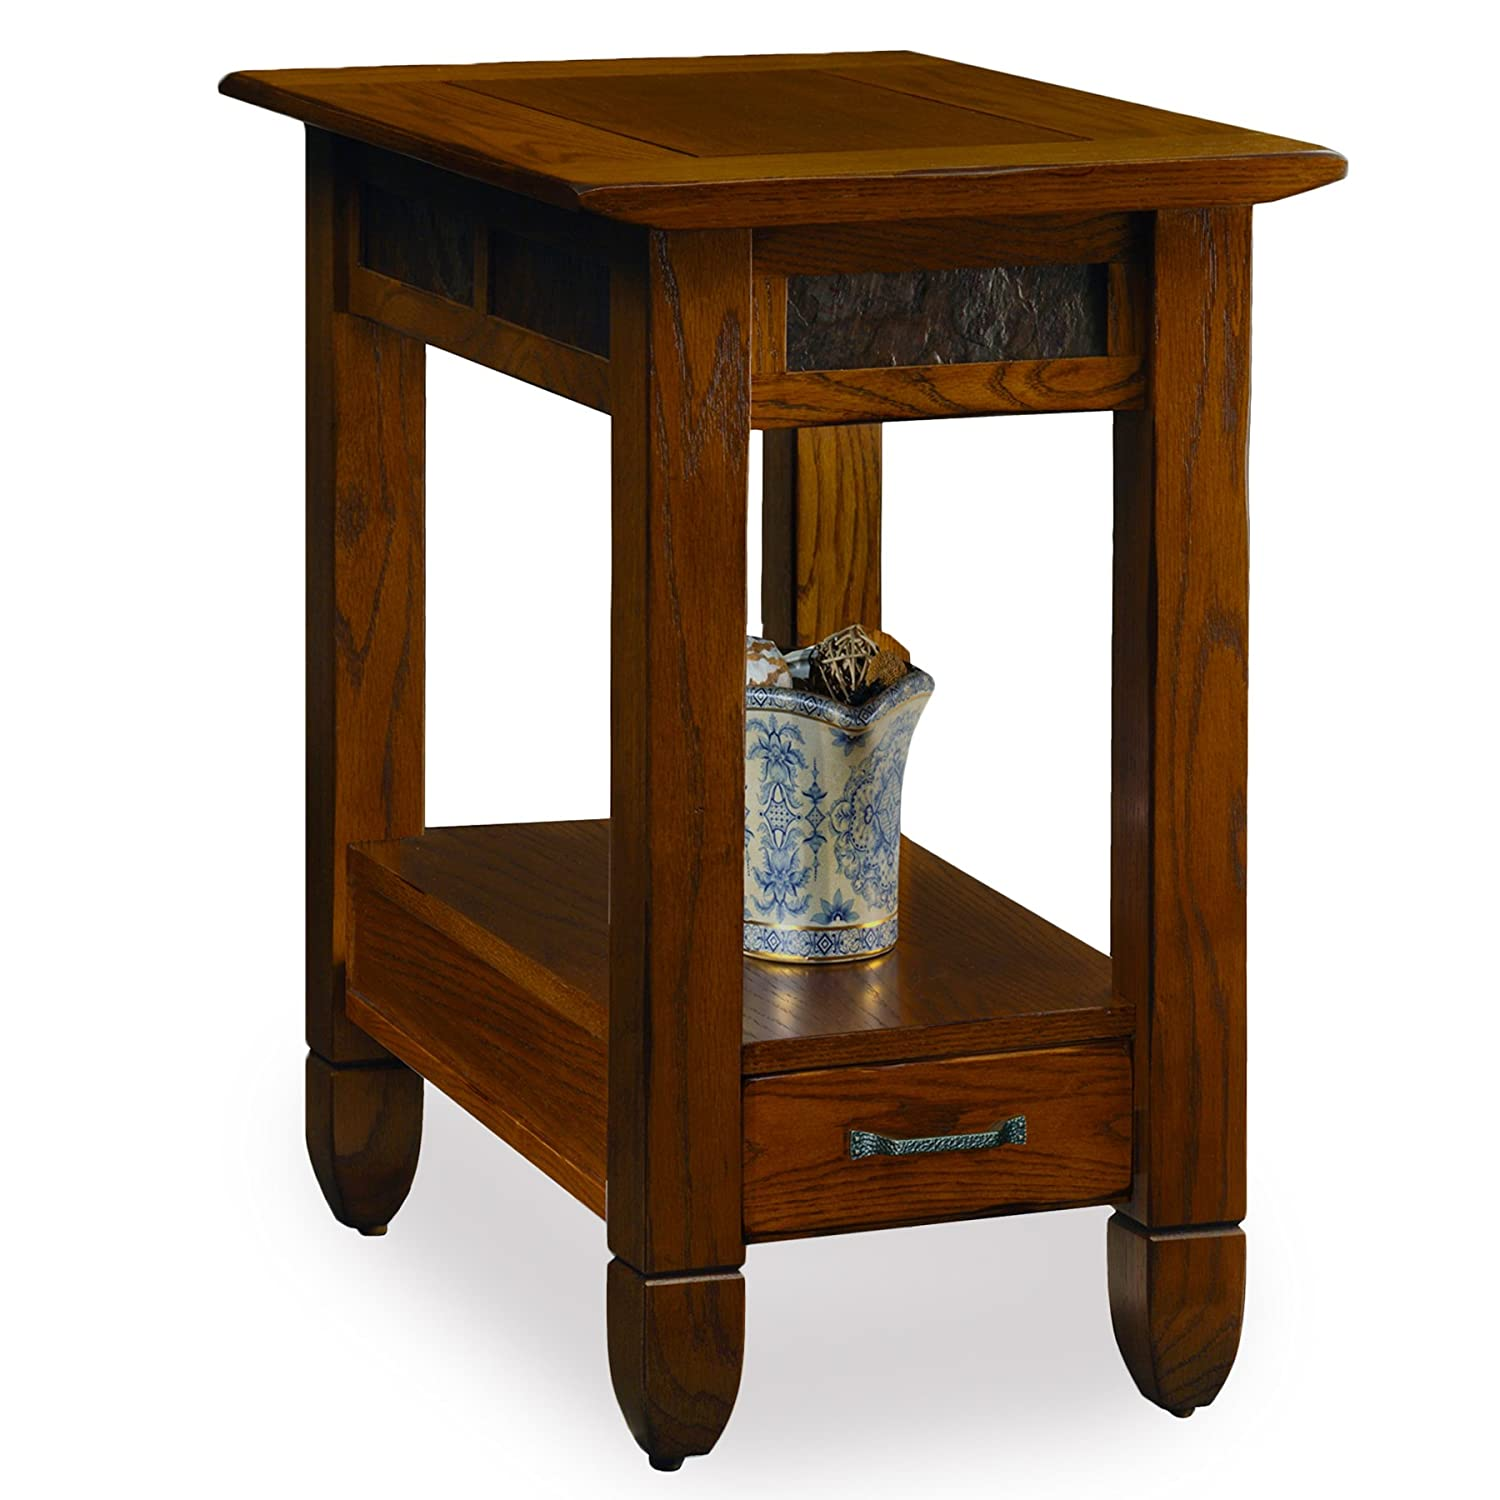 amazoncom slatestone oak chairside end table  rustic oak finish kitchen dining. amazoncom slatestone oak chairside end table  rustic oak finish